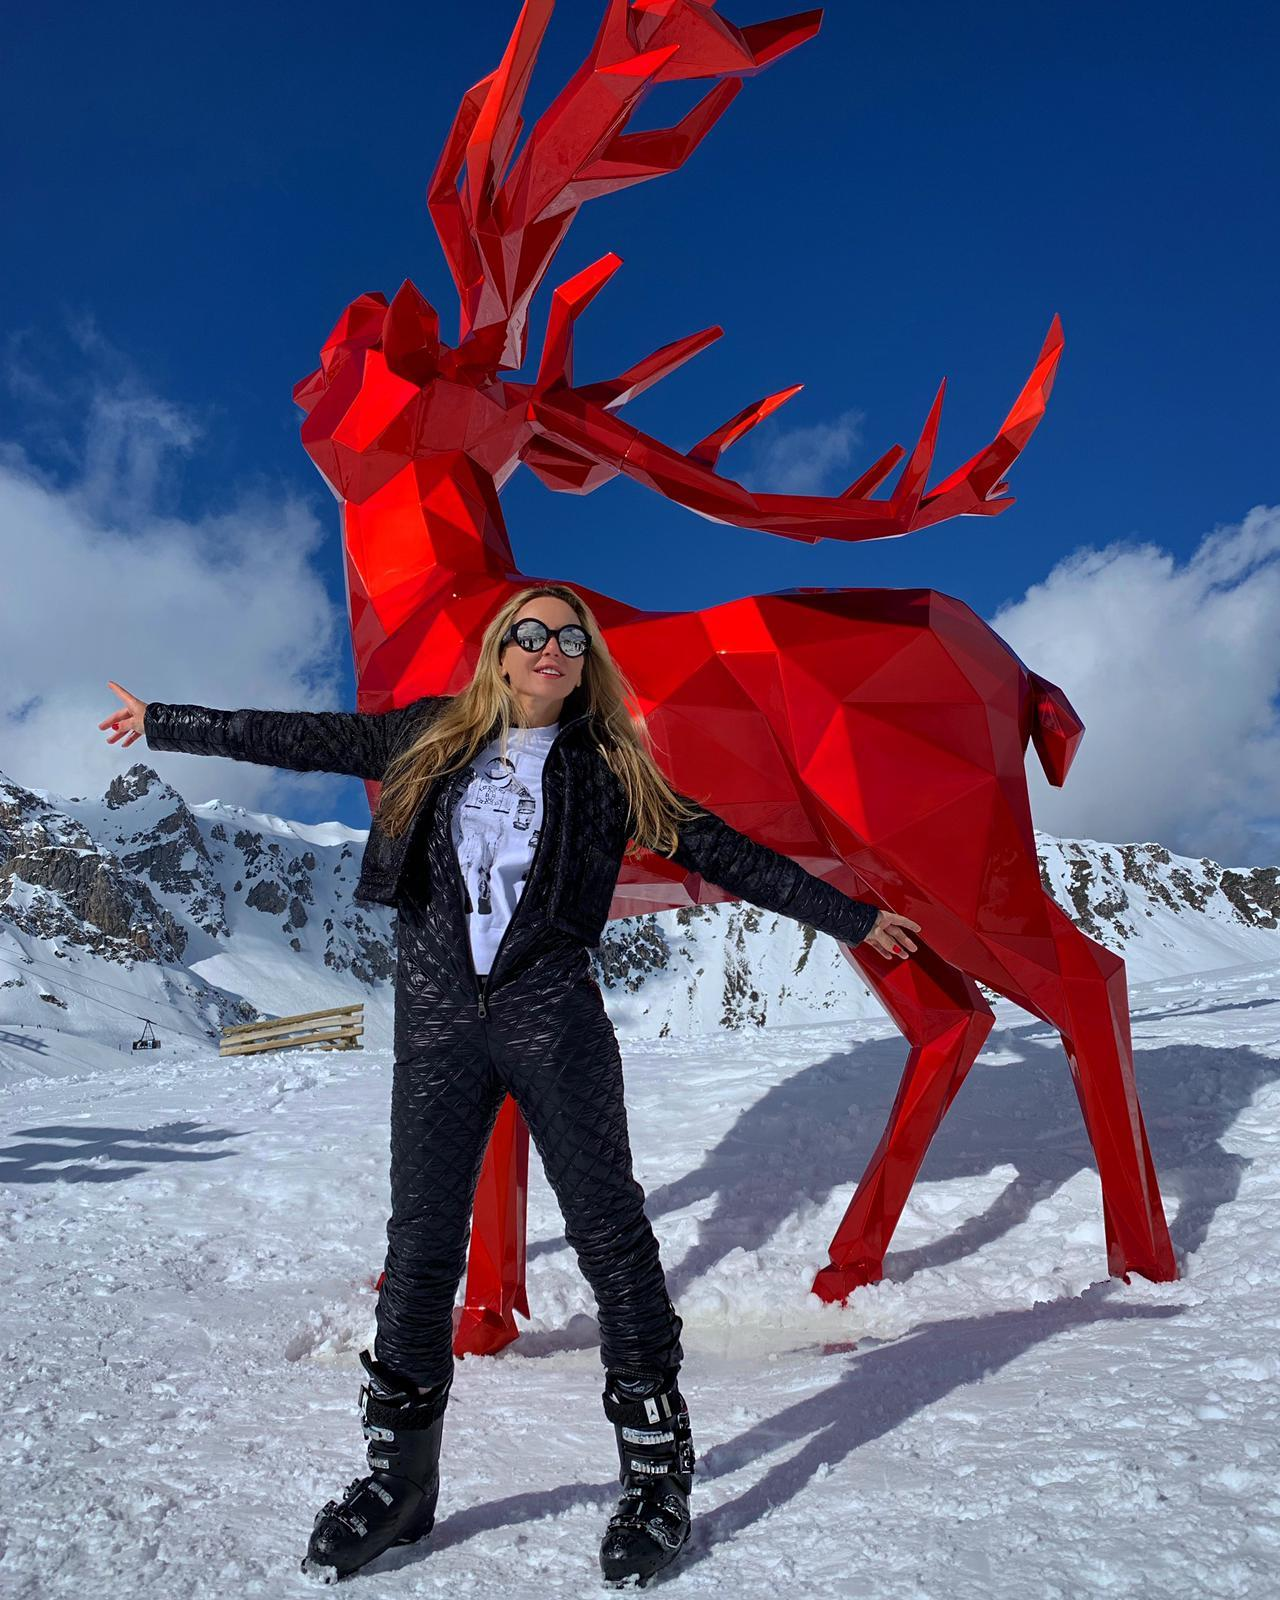 Courchevel: ski time, luxury hotels and good restaurants!